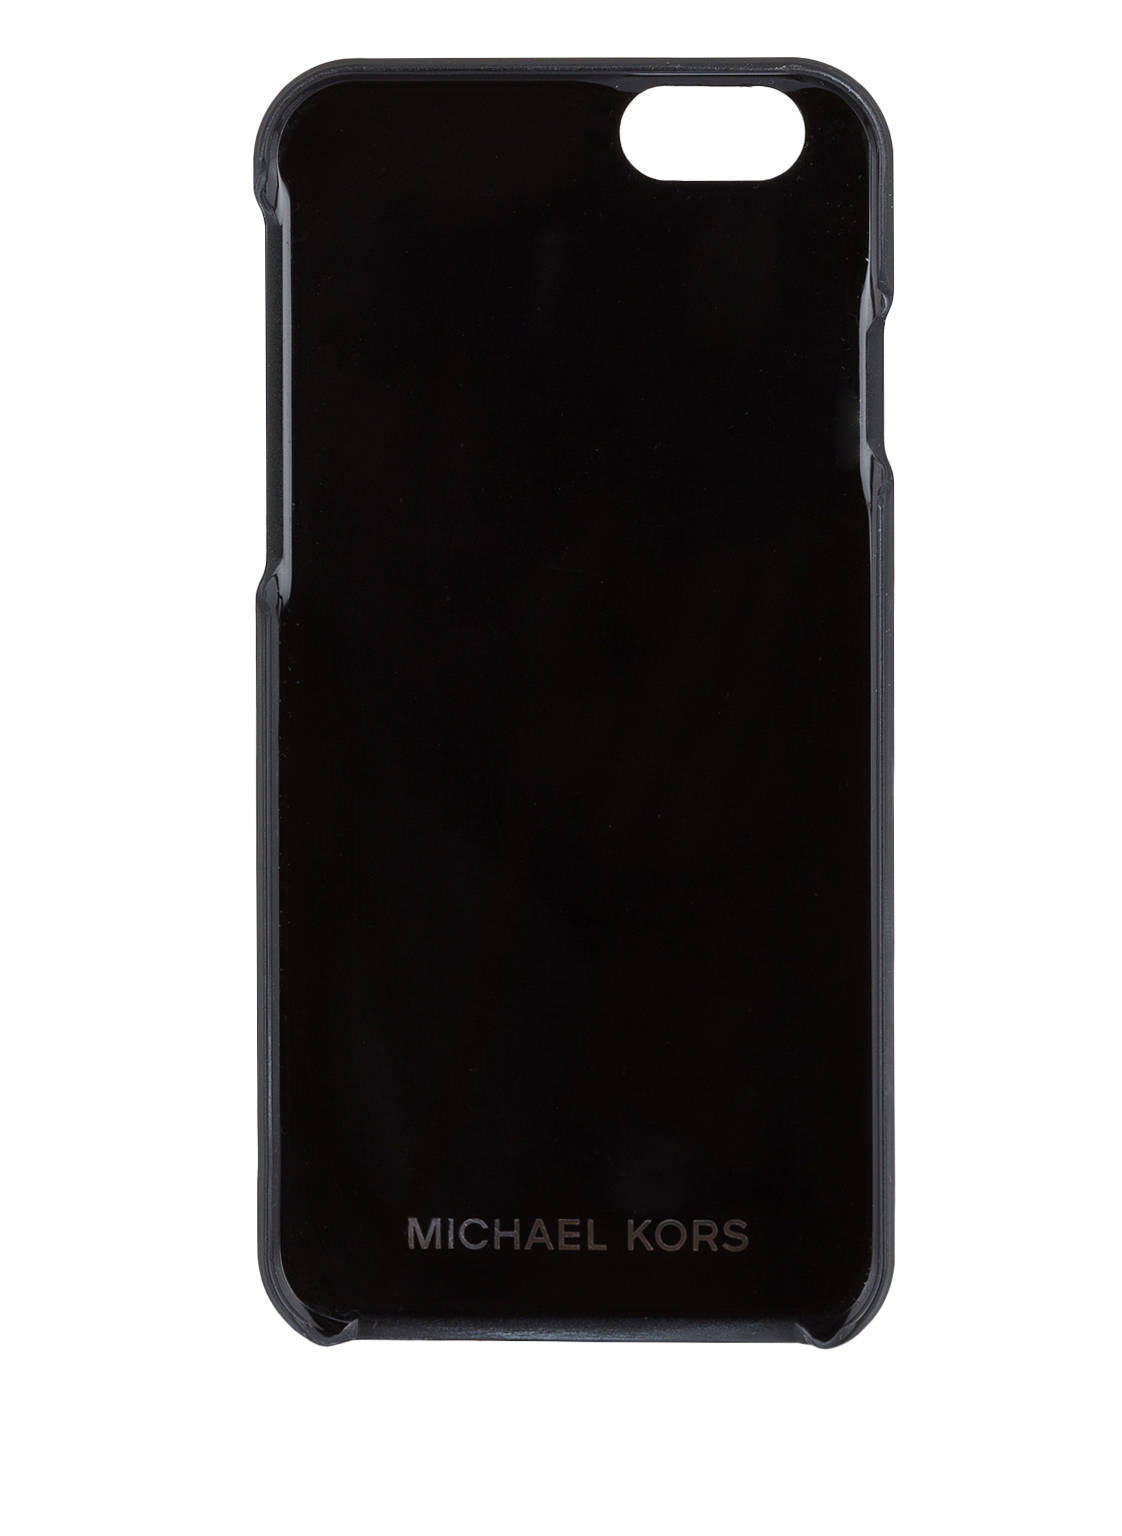 【MICHAEL KORS】iphone 6/6s スマートフォンケース☆black